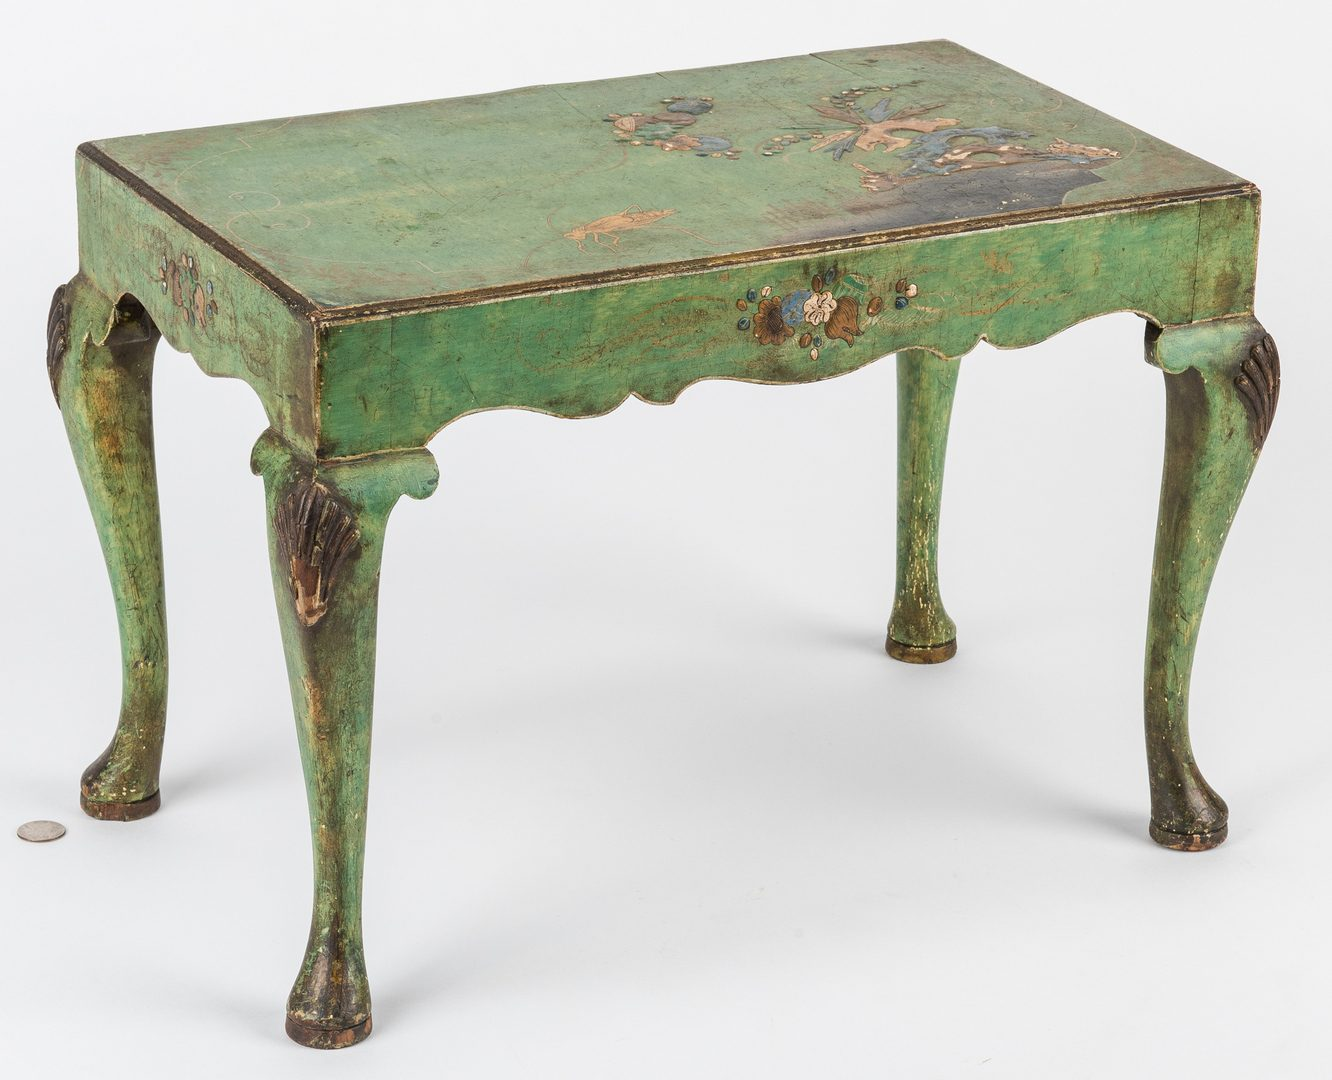 Lot 385: George III Chinoiserie Low Table with Grasshopper